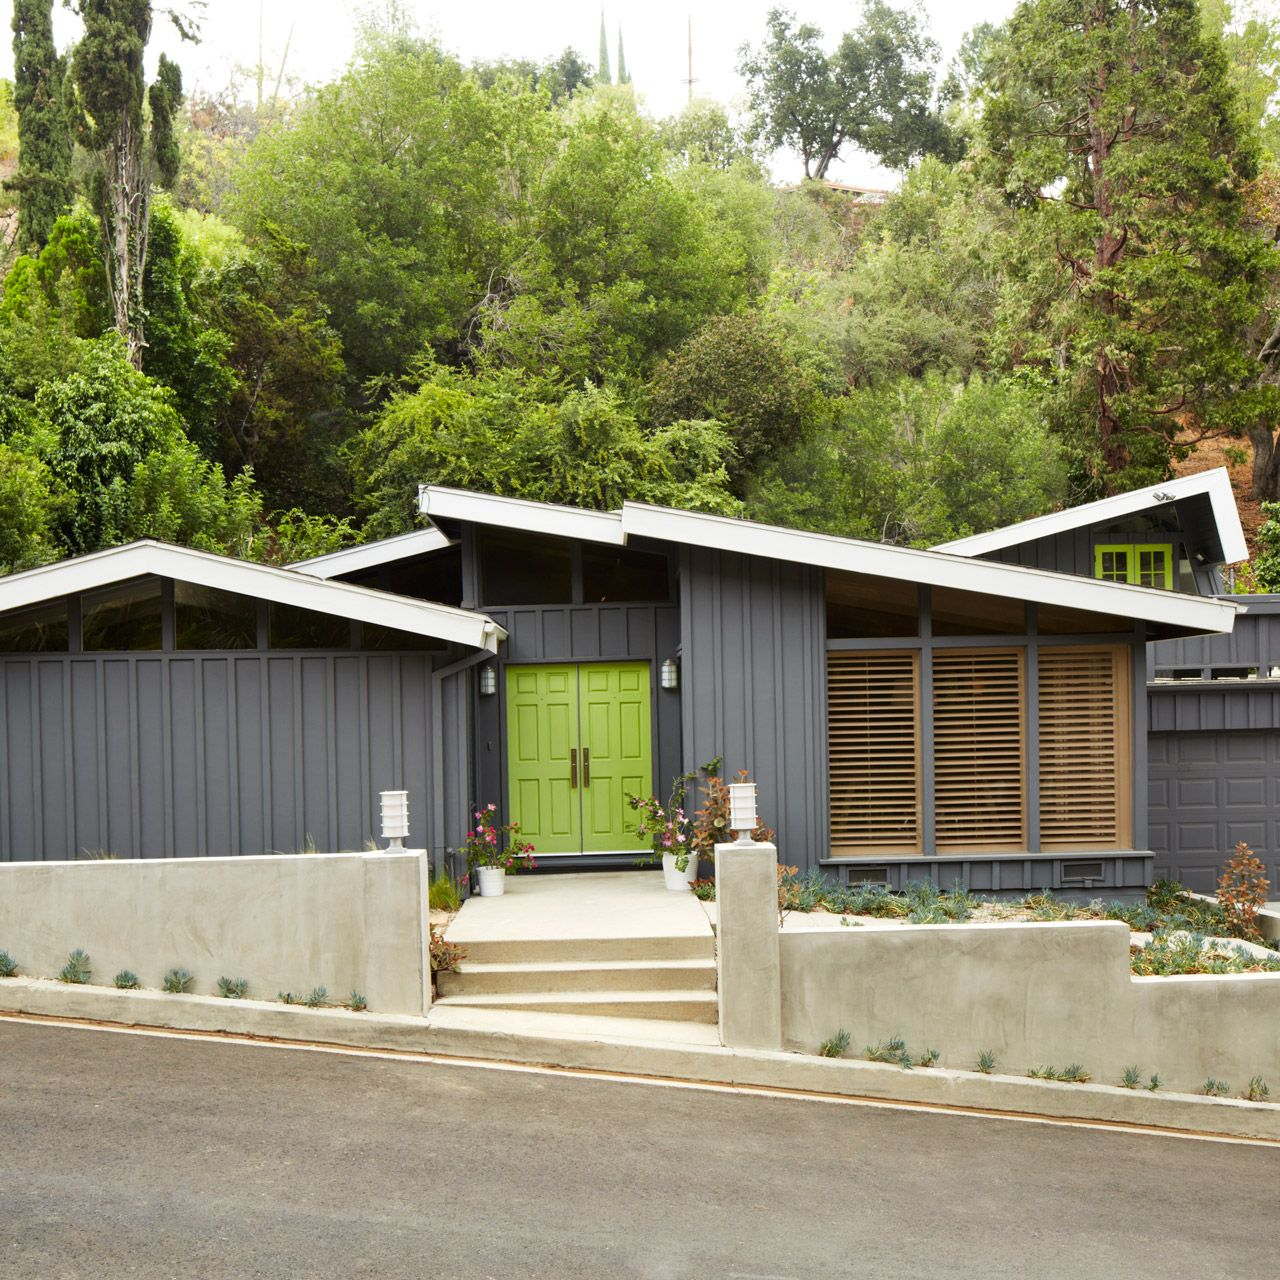 Mcm home improvement exterior paint combinations no pattern - Image Result For Mid Century Modern Homes Garage Study Pinterest Mid Century Modern Mid Century And Midcentury Modern